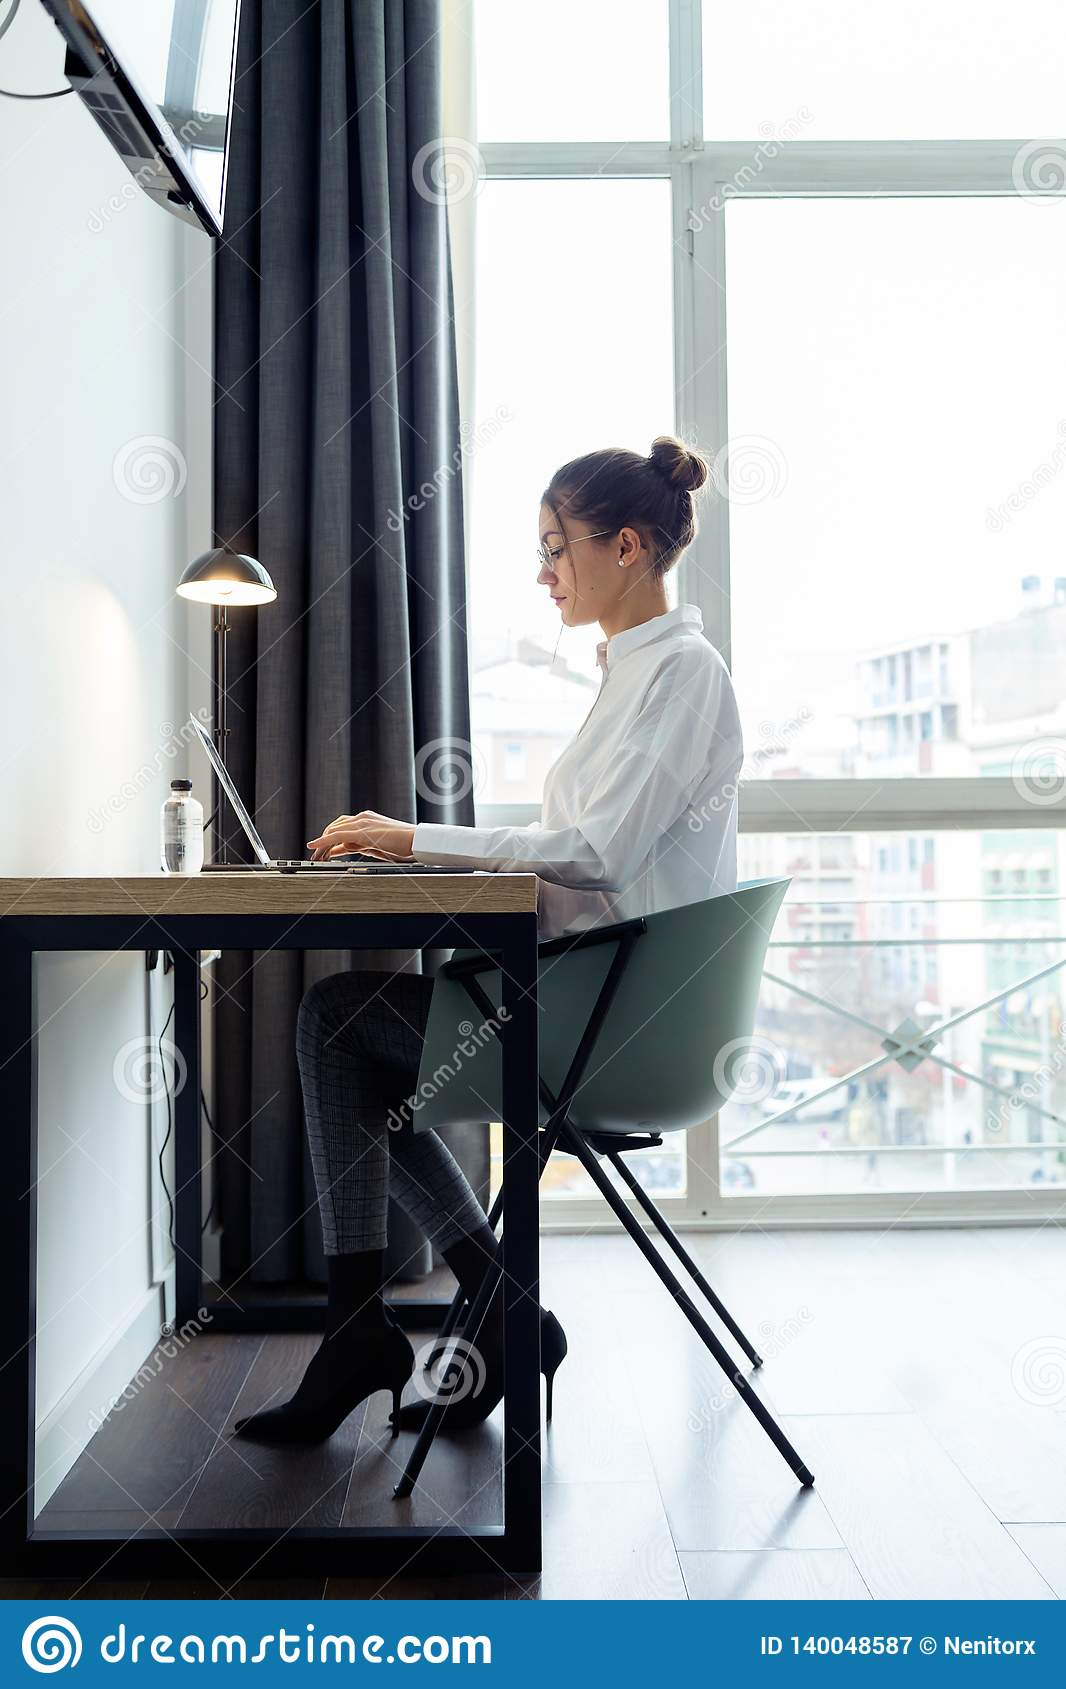 Hotel Room Desk: Concentrated Beautiful Businesswoman Working With Her